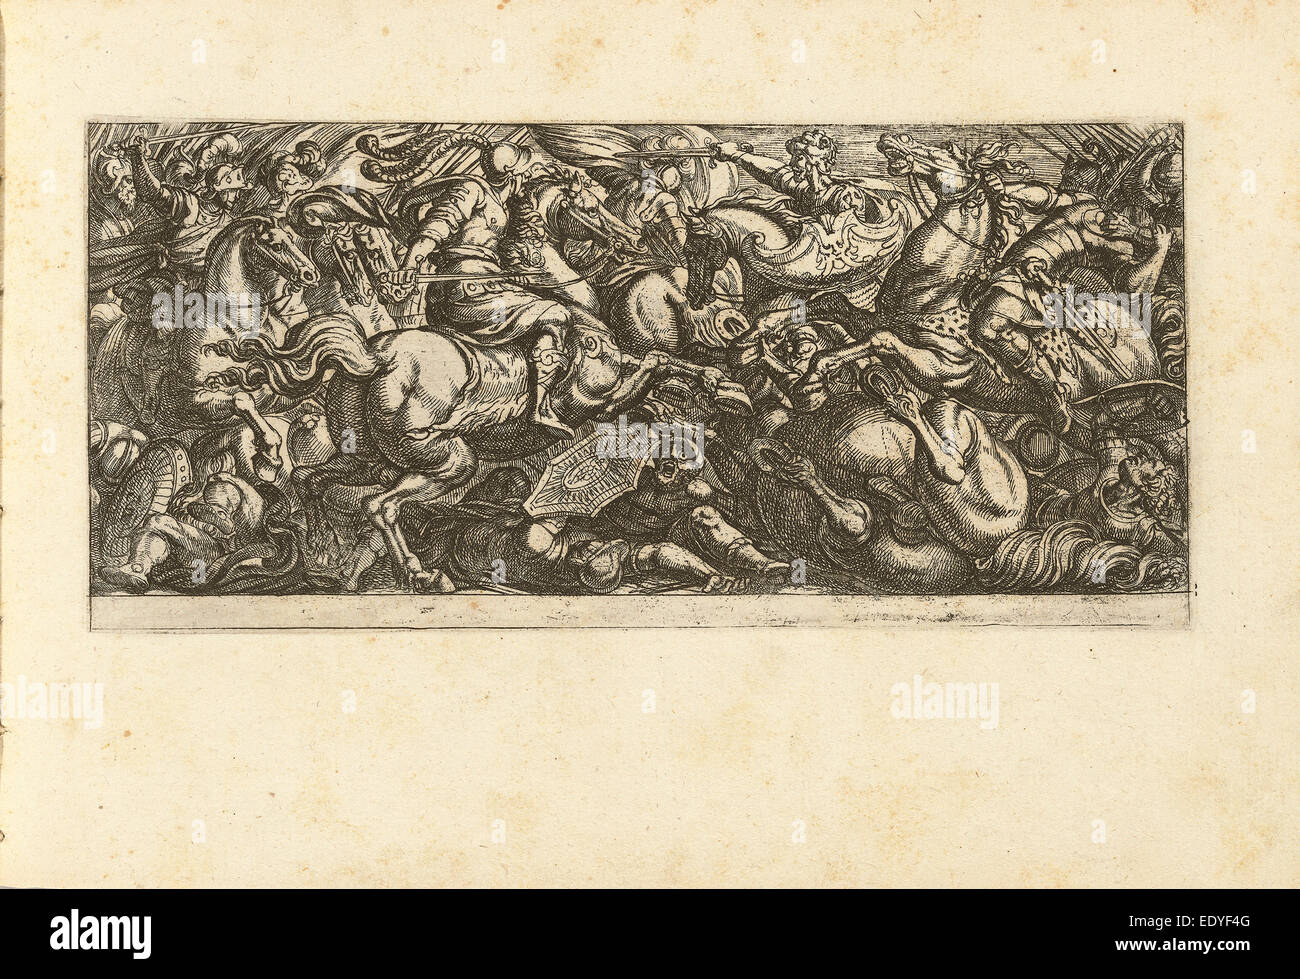 Antonio Tempesta (Italian, 1555 - 1630), Cavalry Charge with Soldiers and Horses Trampled, etching - Stock Image